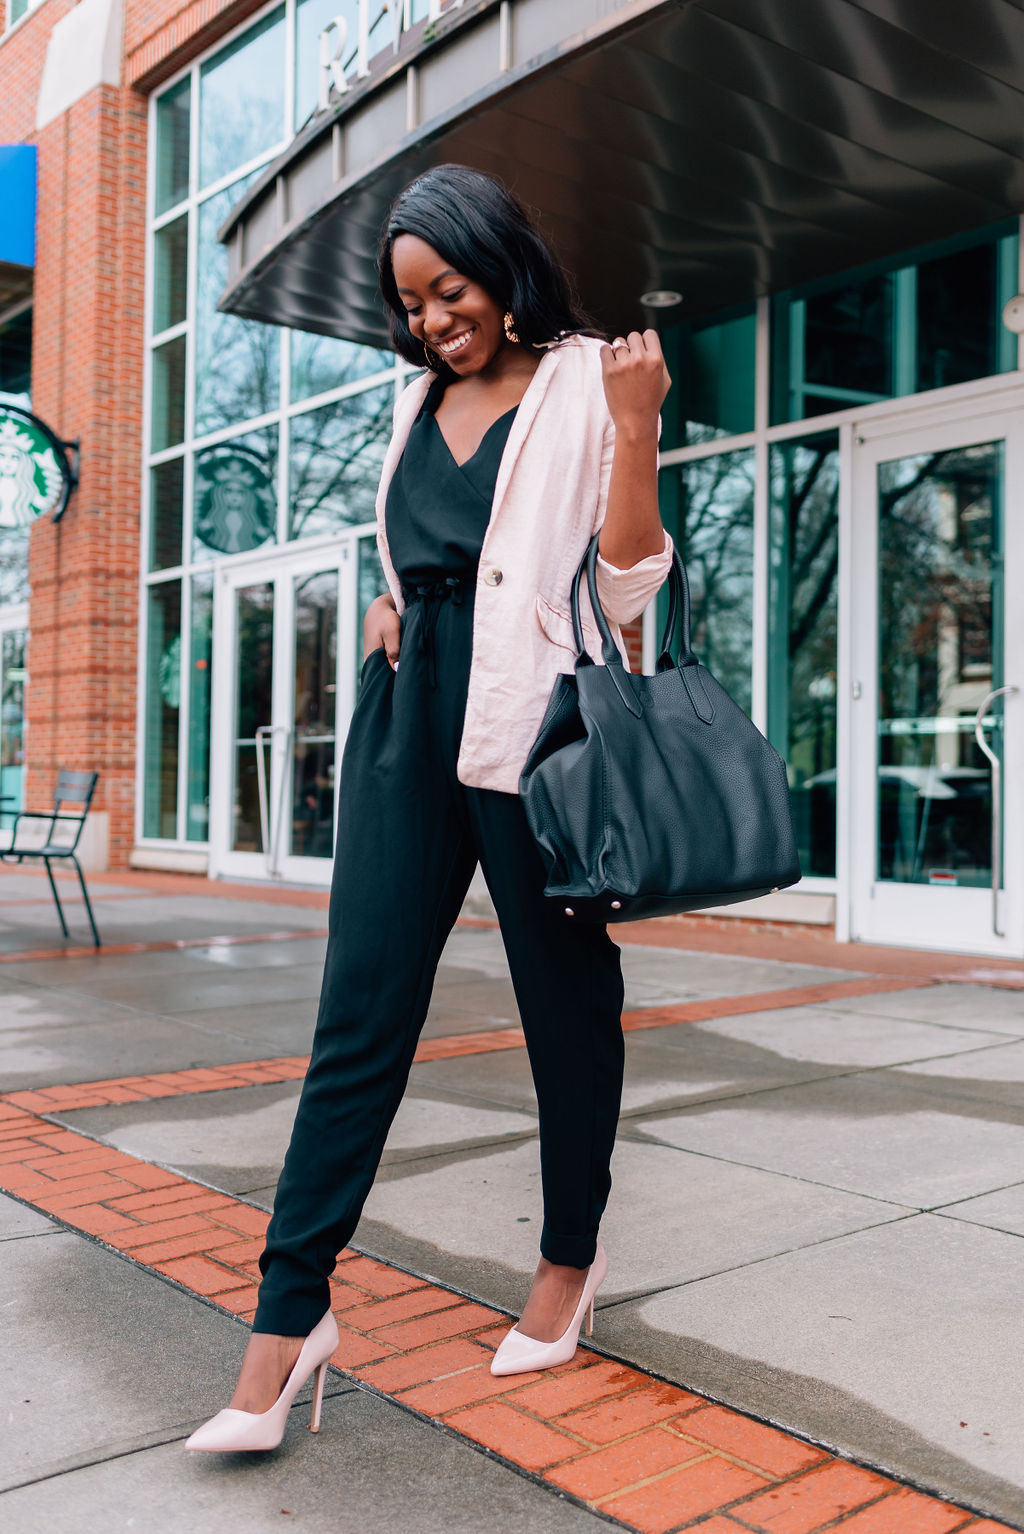 26232faef36a Greenville South Carolina fashion blogger, Tomi, shares her day to night  business casual look